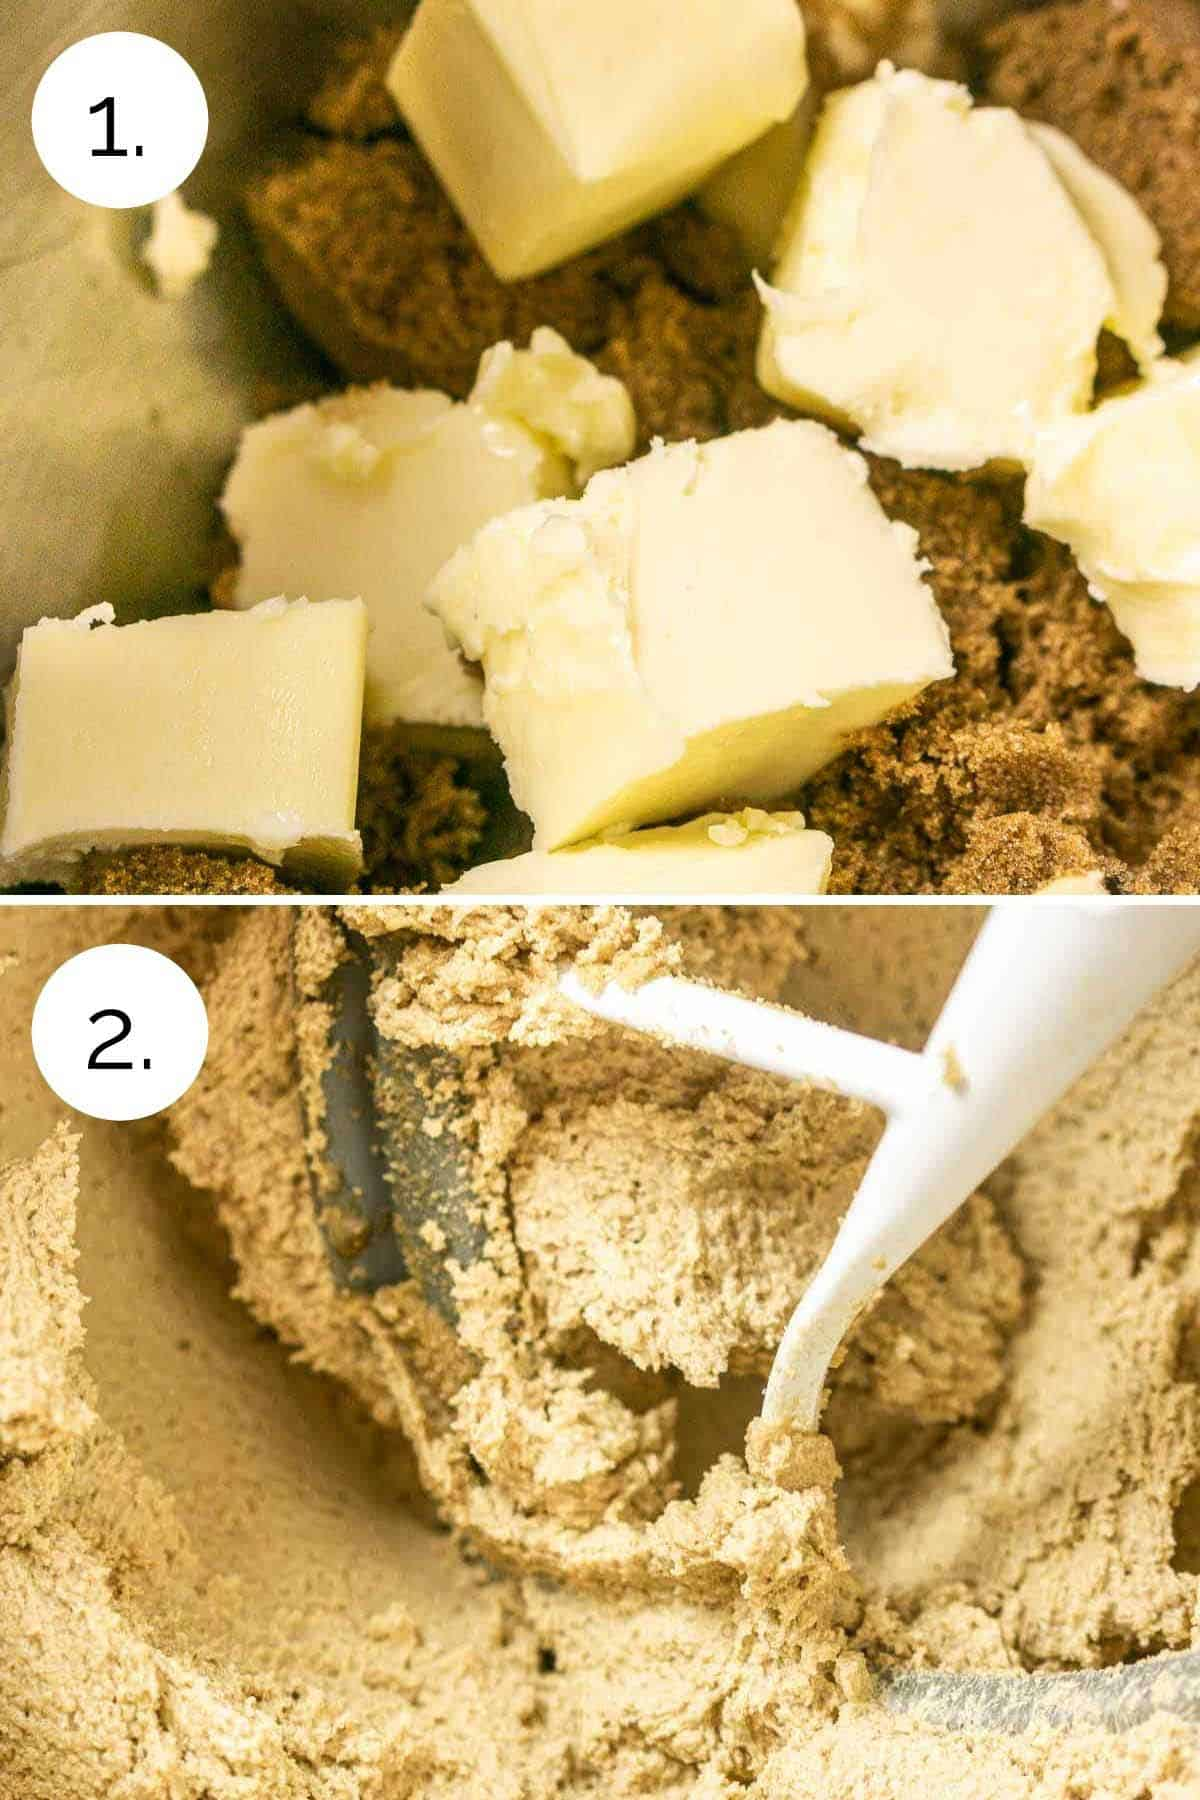 Showing the process of beating the sugar and butter until light and fluffy.